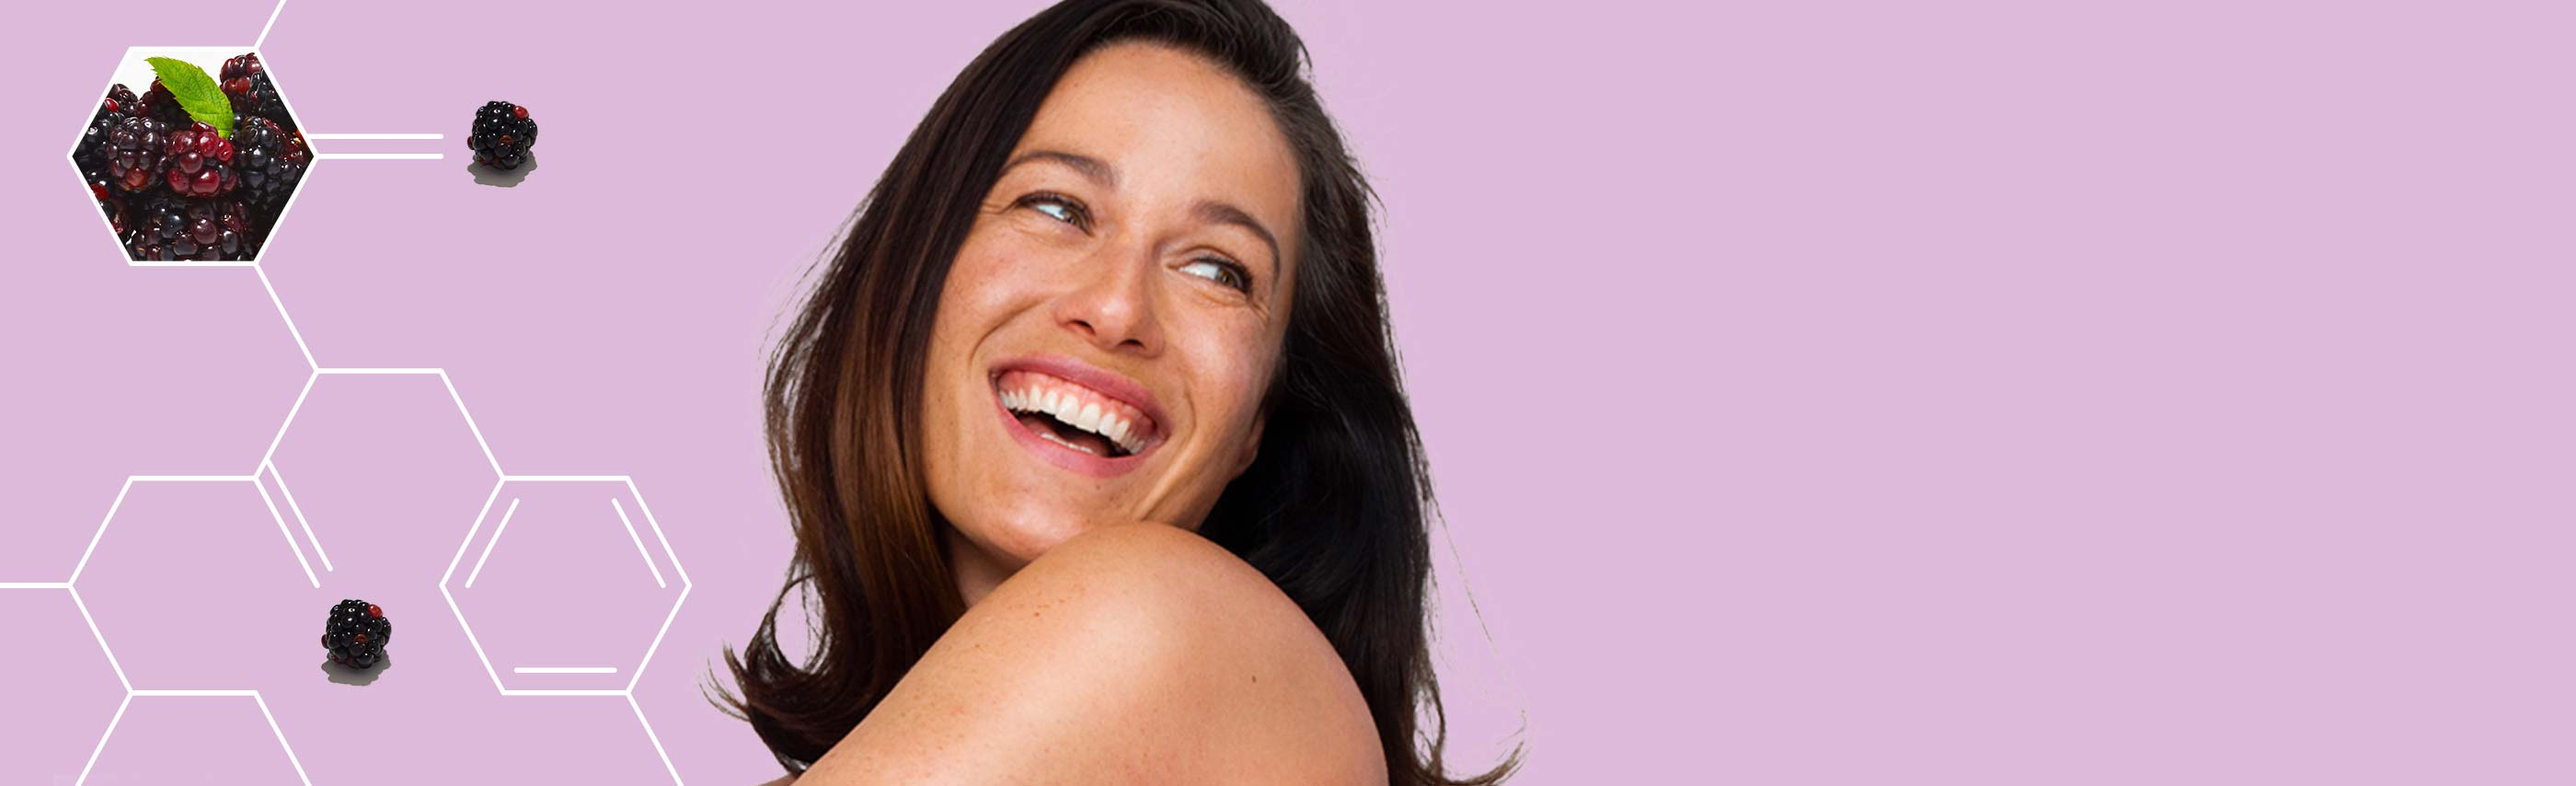 smiling woman using Aveeno absolutely ageless products